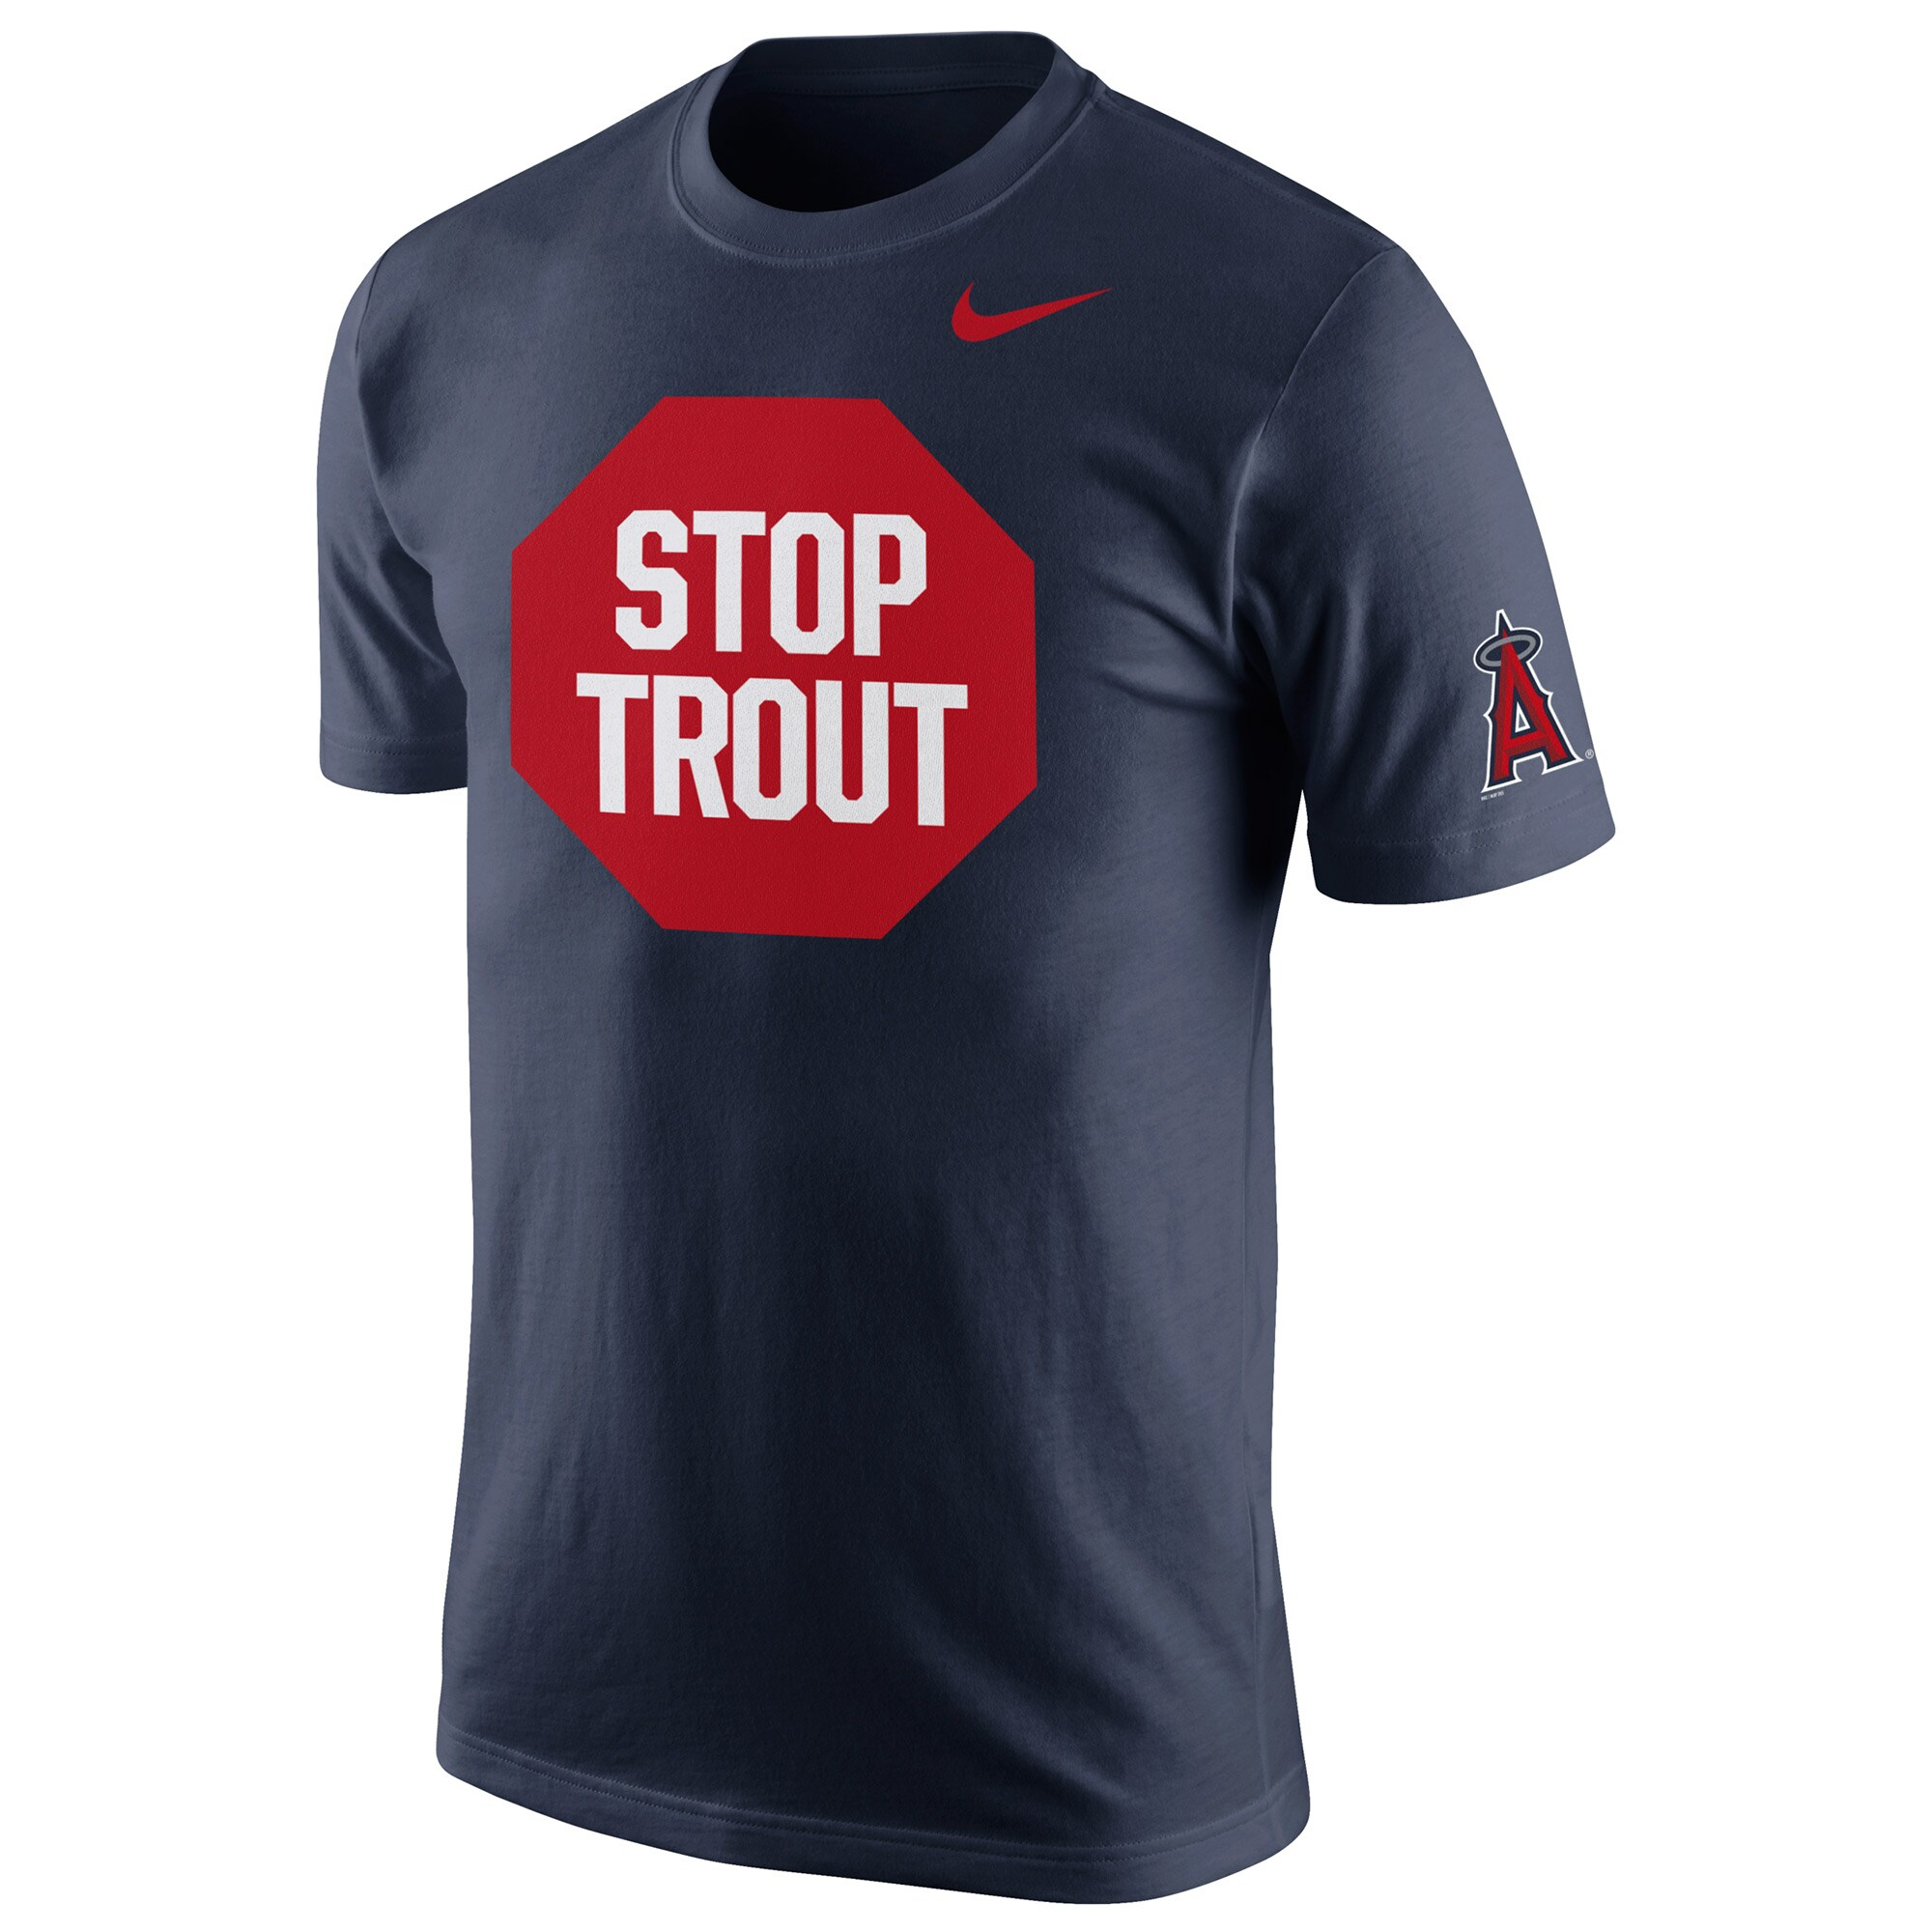 Los Angeles Angels Nike Stop Trout T-Shirt - Navy